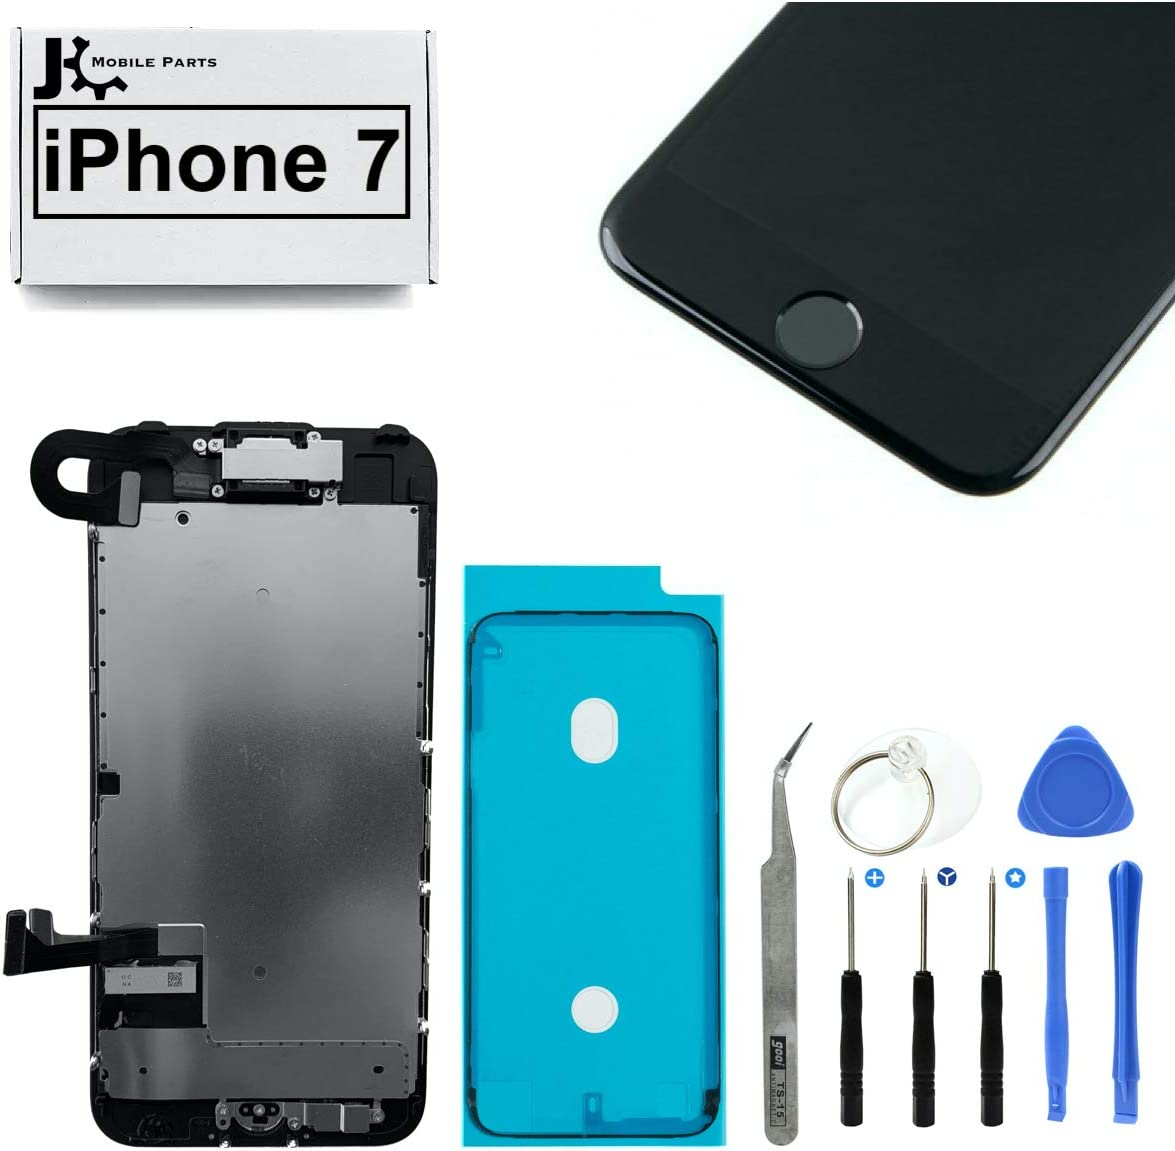 Full Screen Replacement LCD 3D Touch Assembly Front Camera Ear Speaker Home Button with Frame Adhesive and Repair Tools for iPhone 7 4.7 inch (Black)